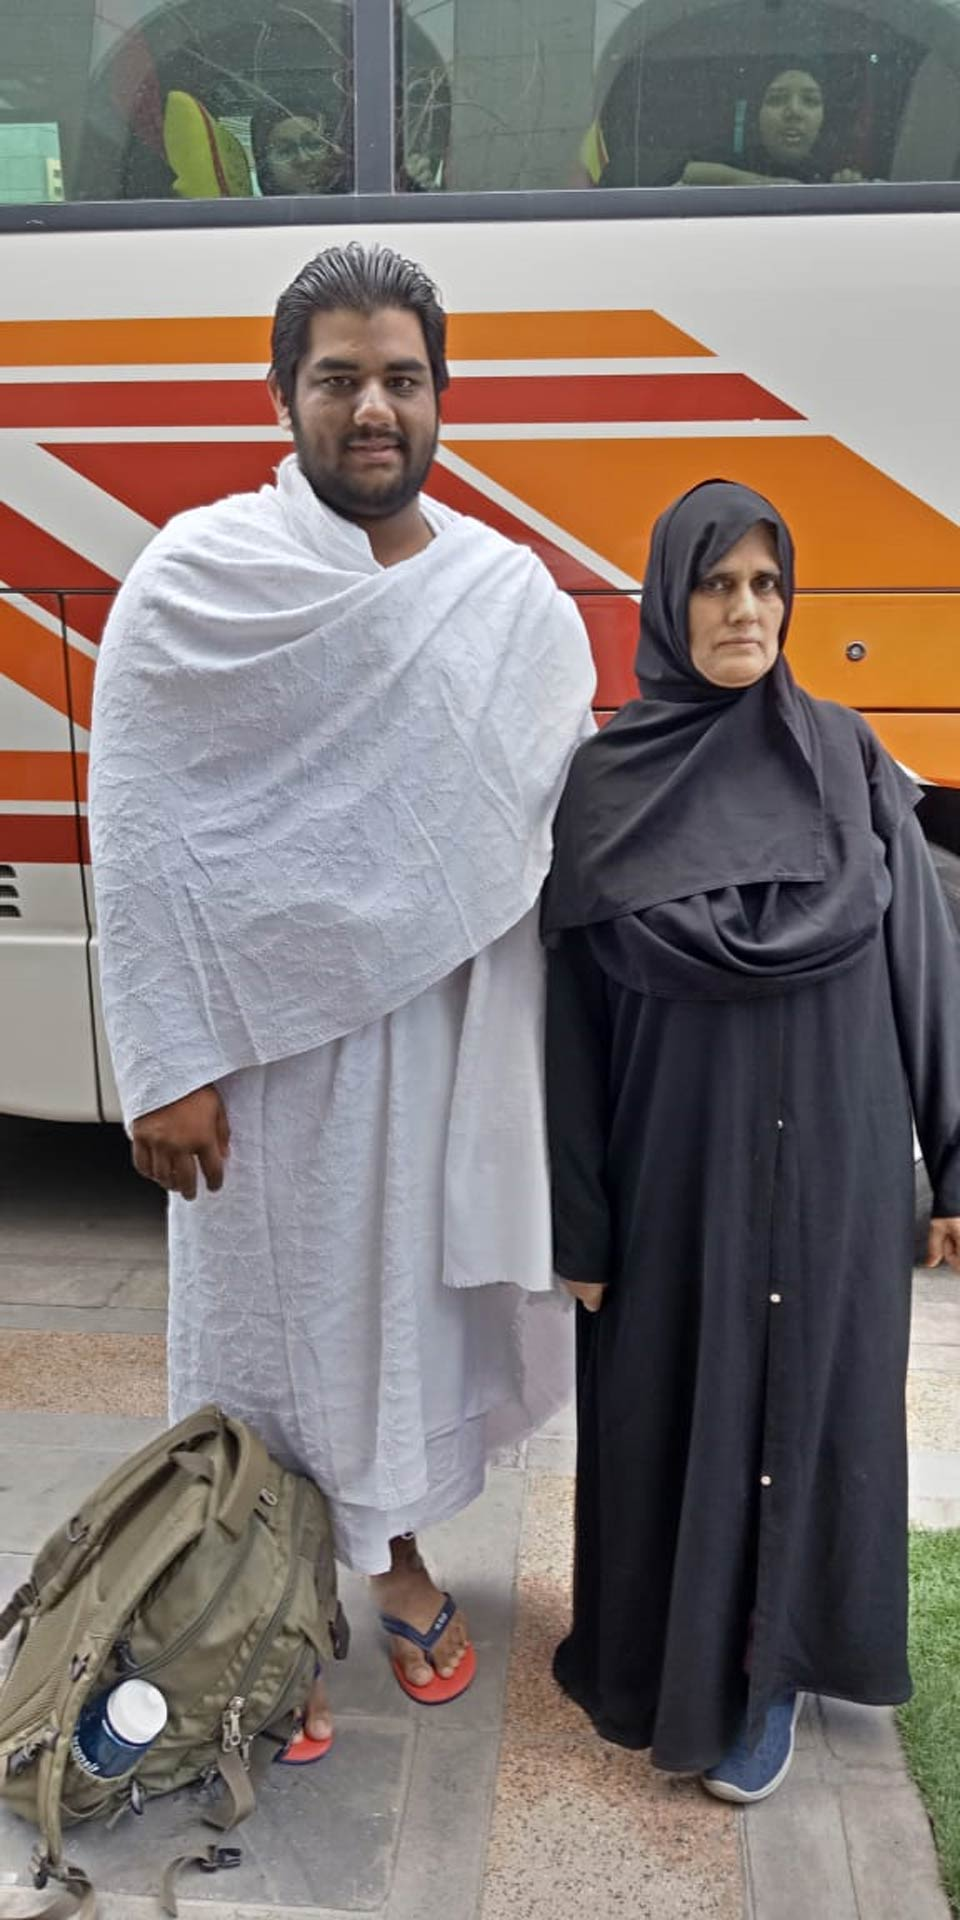 Engr. Taha Ahmed Khan in Ihram with his mother Mrs. Rudaba Irshad at Meekat